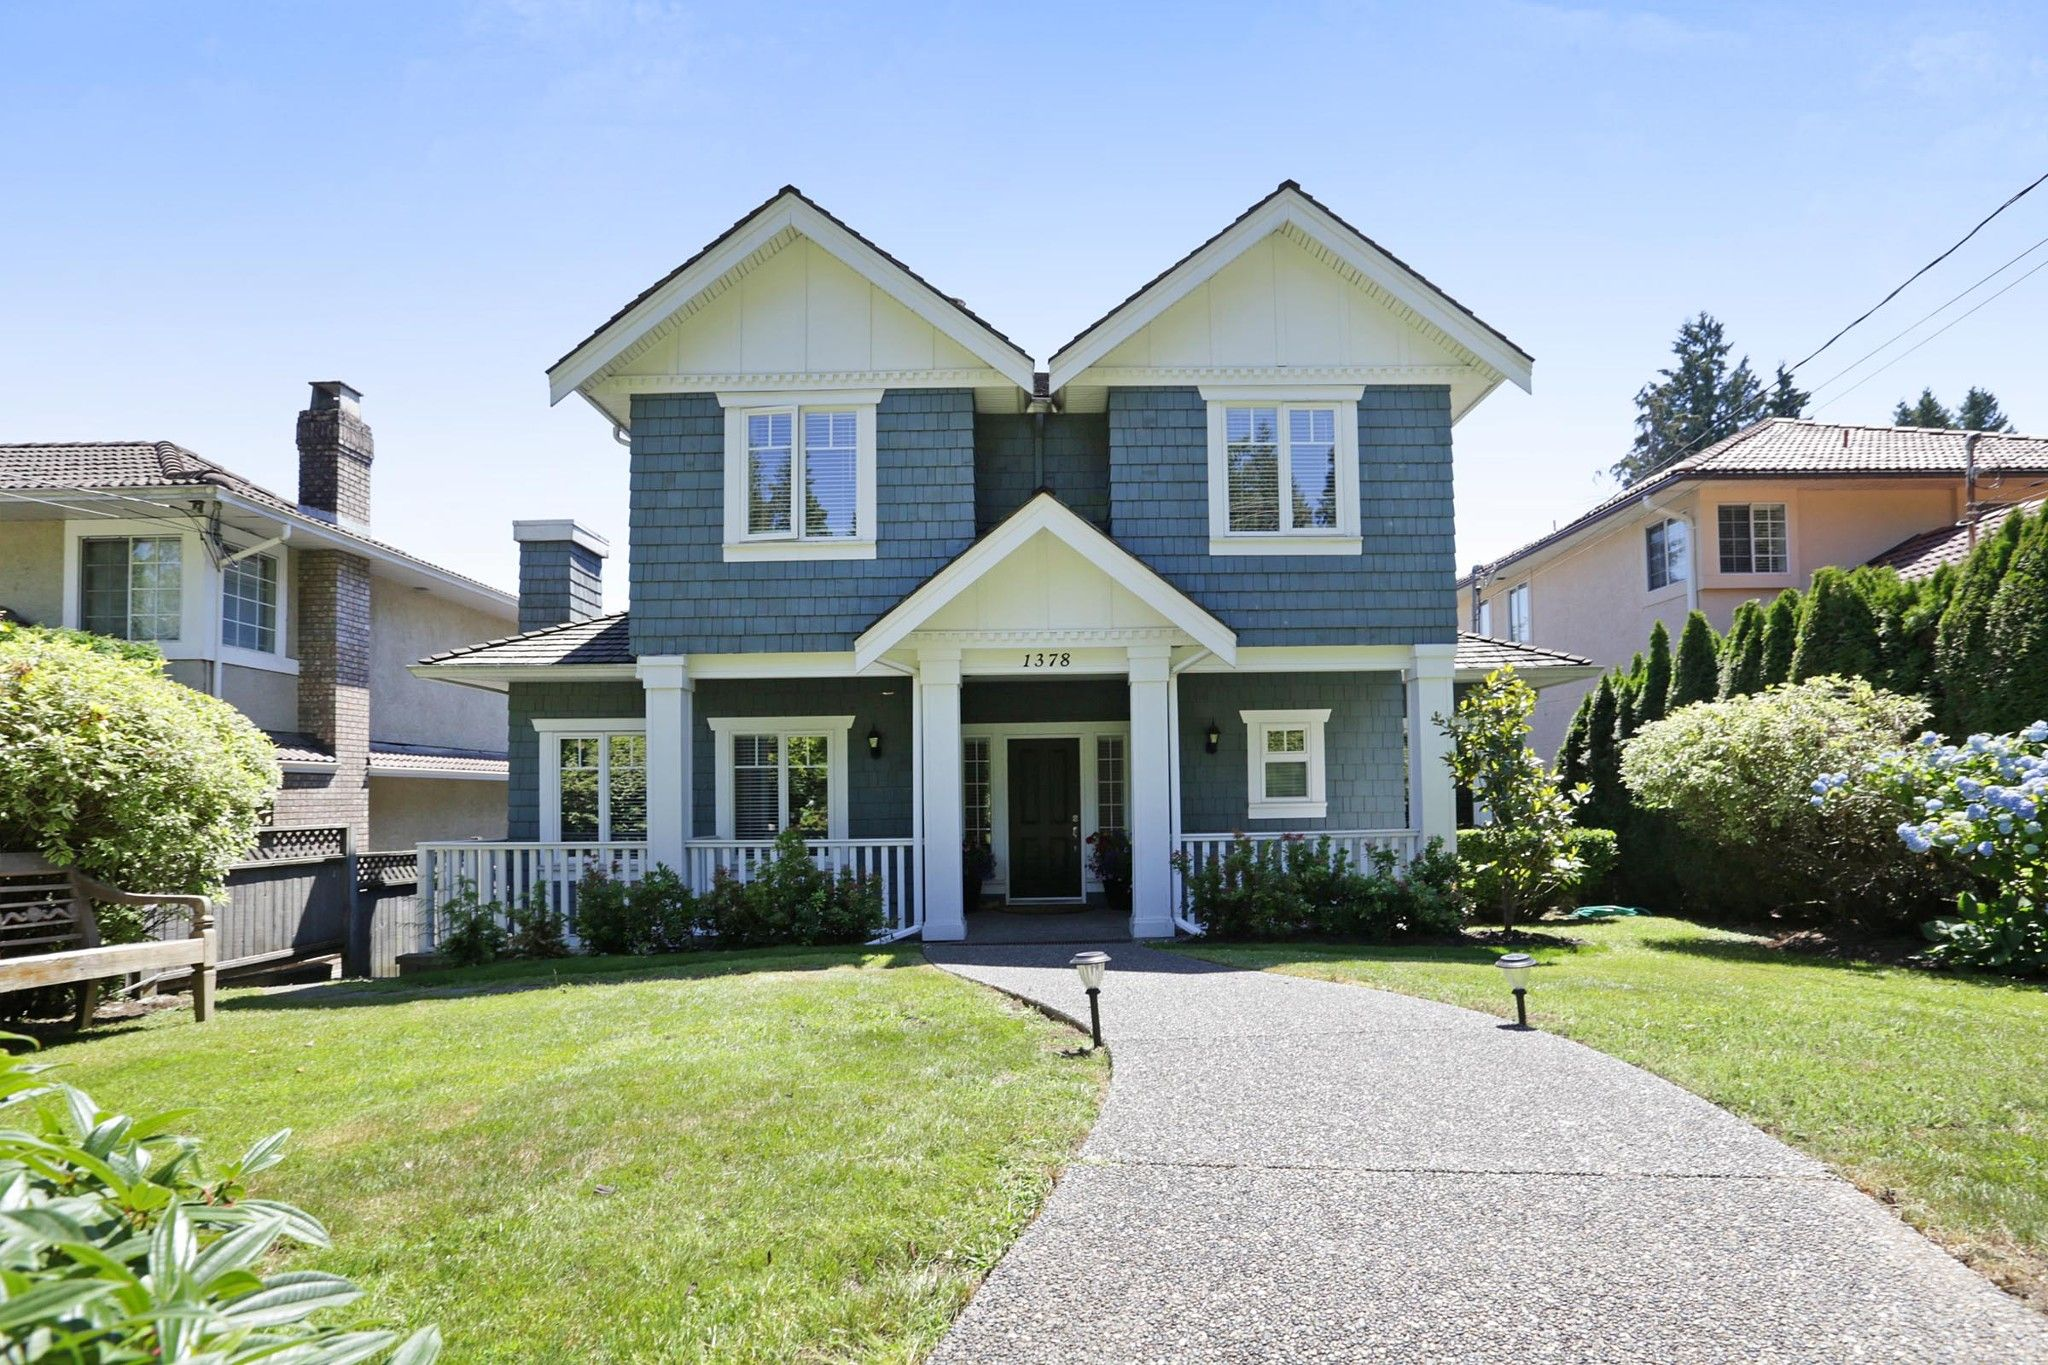 Main Photo: 1378 MATHERS Avenue in West Vancouver: Ambleside House for sale : MLS®# R2287960